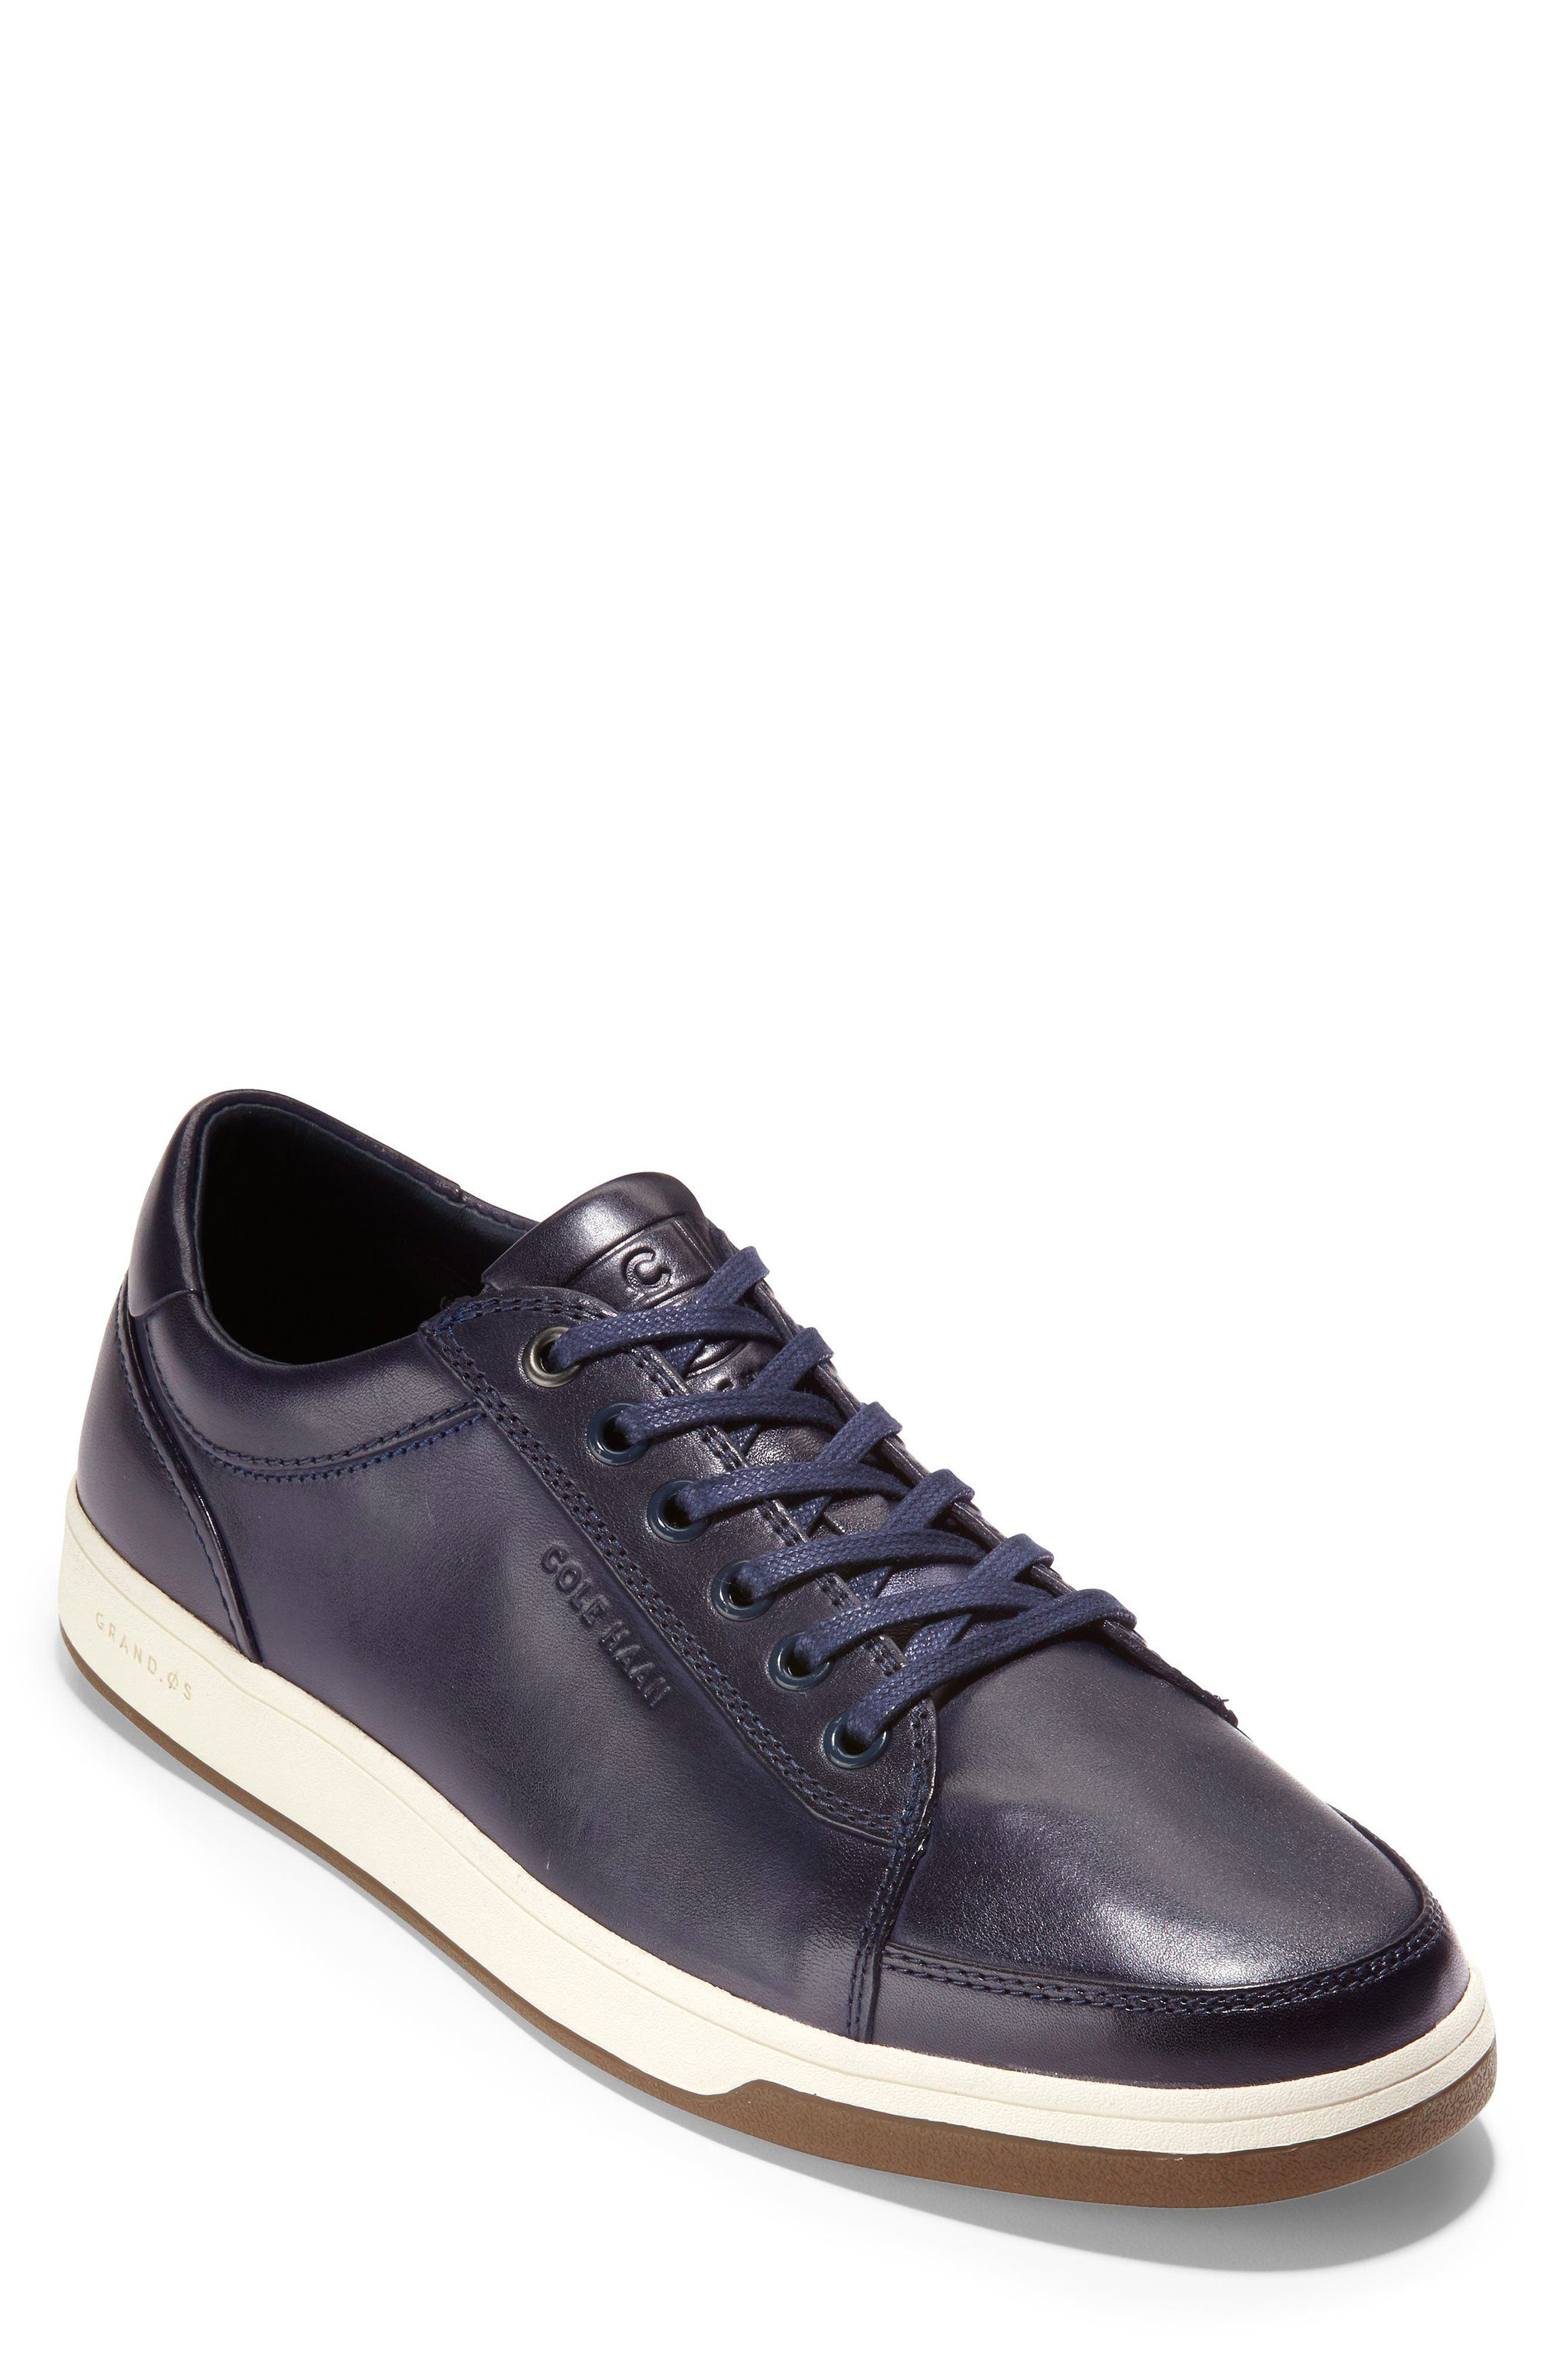 GrandPro Spectator Sneaker,                             Main thumbnail 1, color,                             BLAZER BLUE HANDSTAIN LEATHER